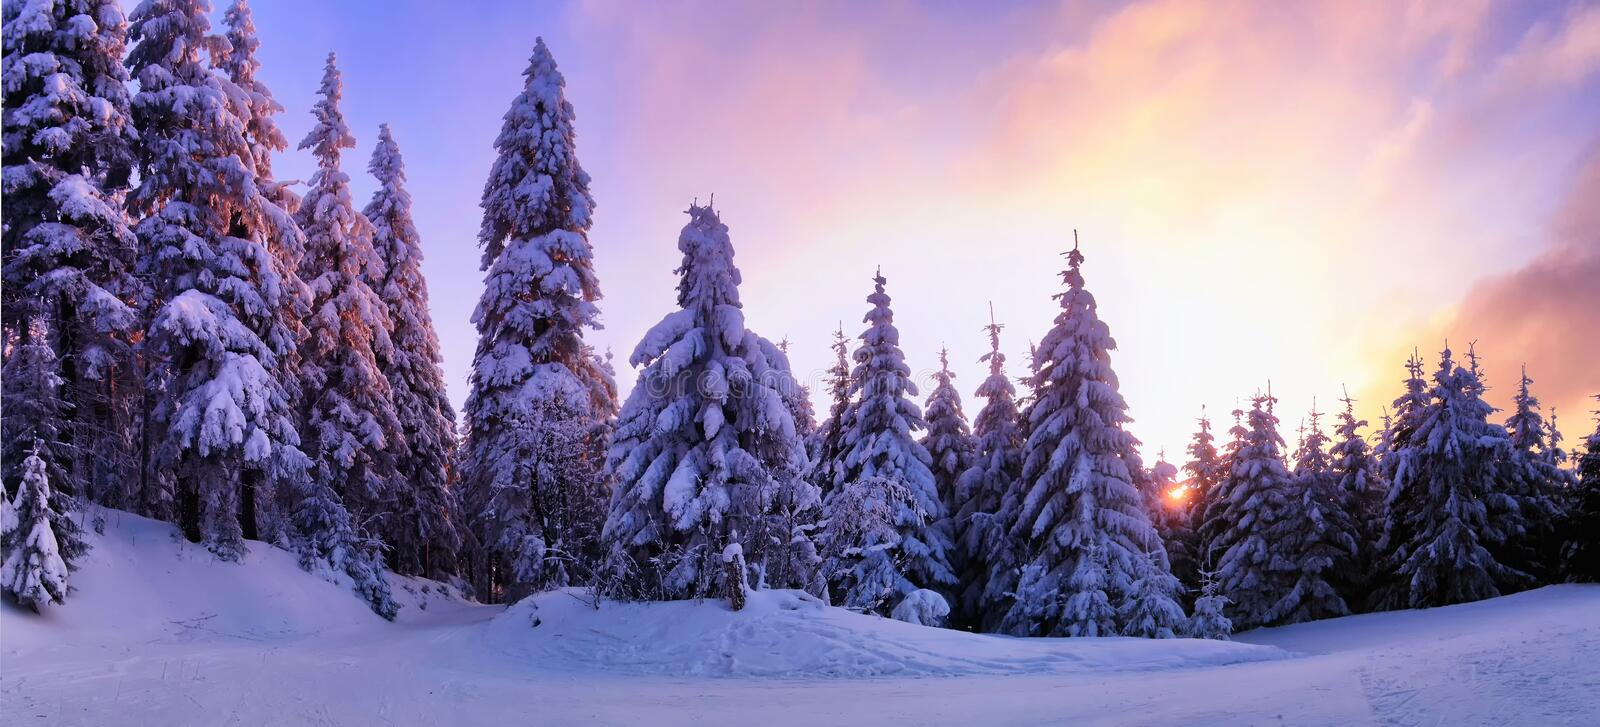 Beautiful winter landscape with the snow covered spruce trees. Mountain forest and cross country track at winter day sunset,sunlight, sky and clouds, relaxing royalty free stock photography